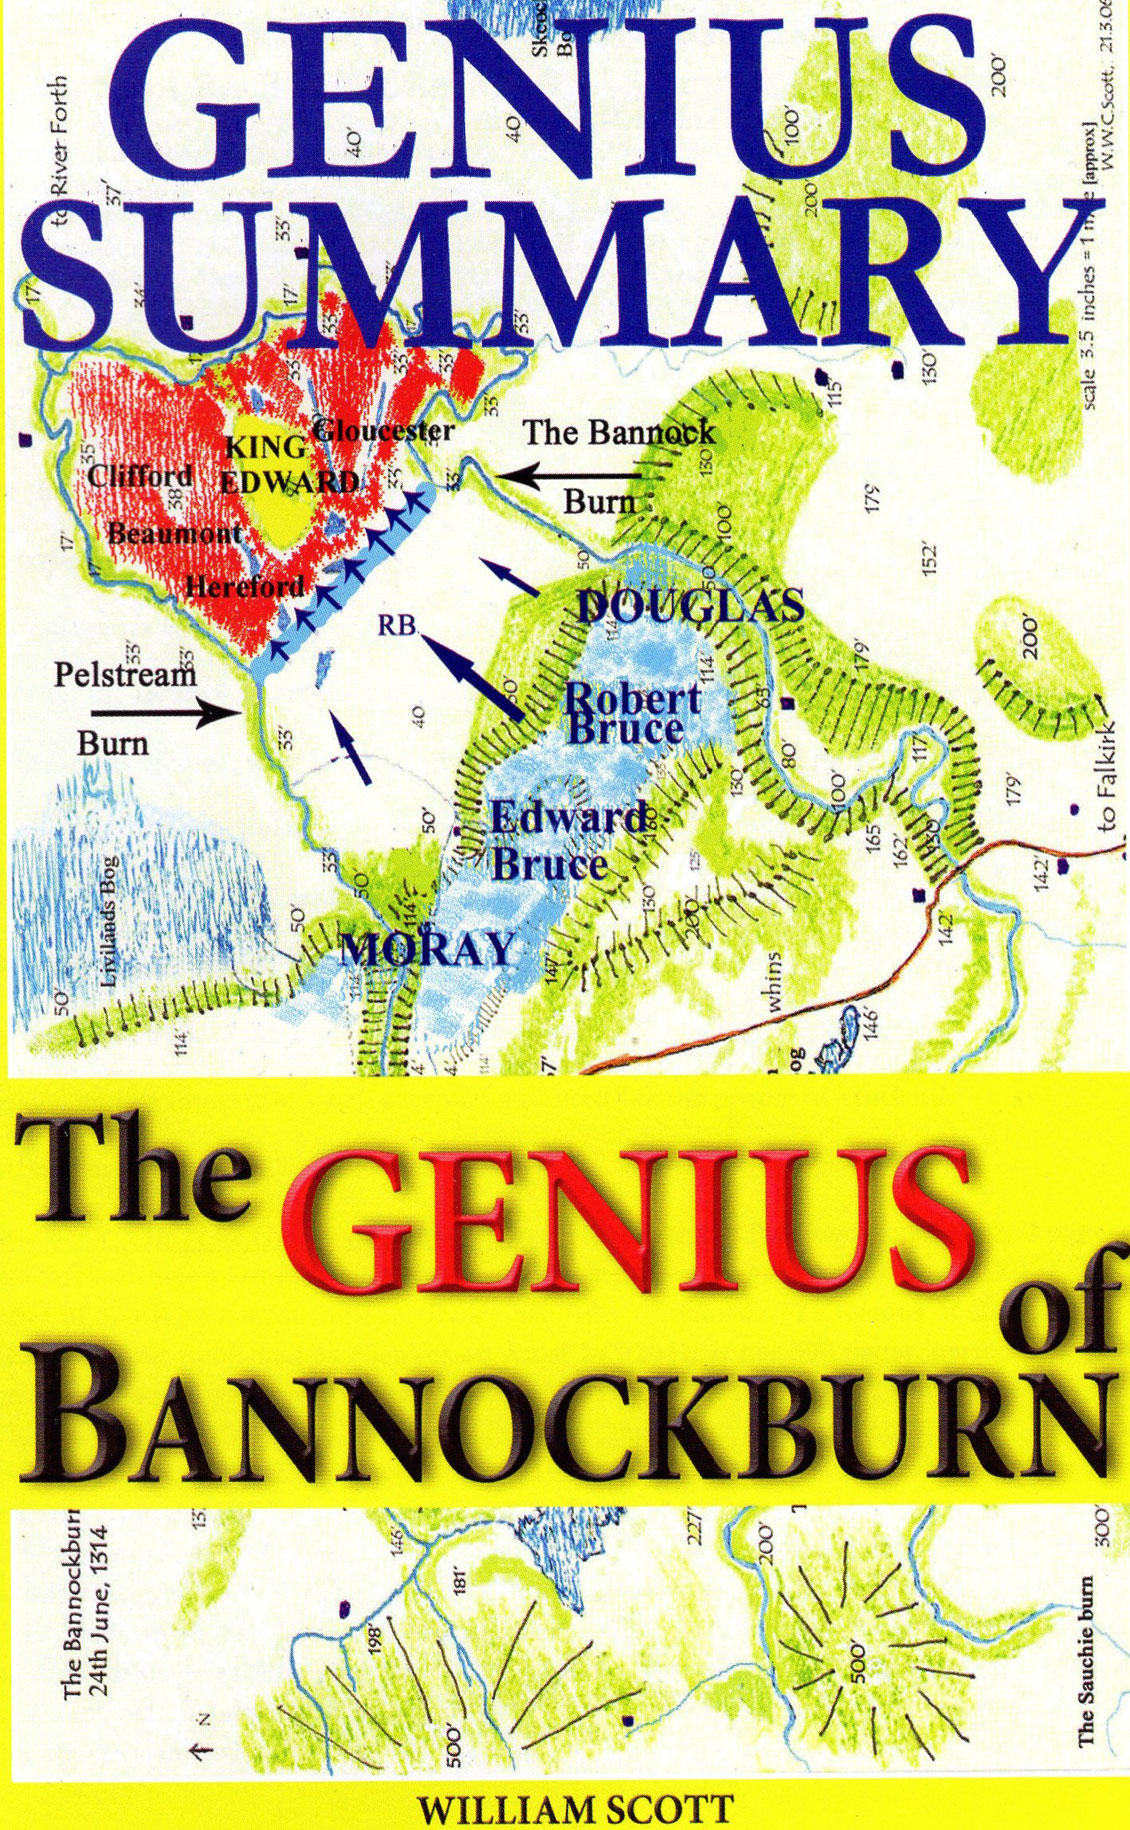 © Elenkus: The Genius of Bannockburn